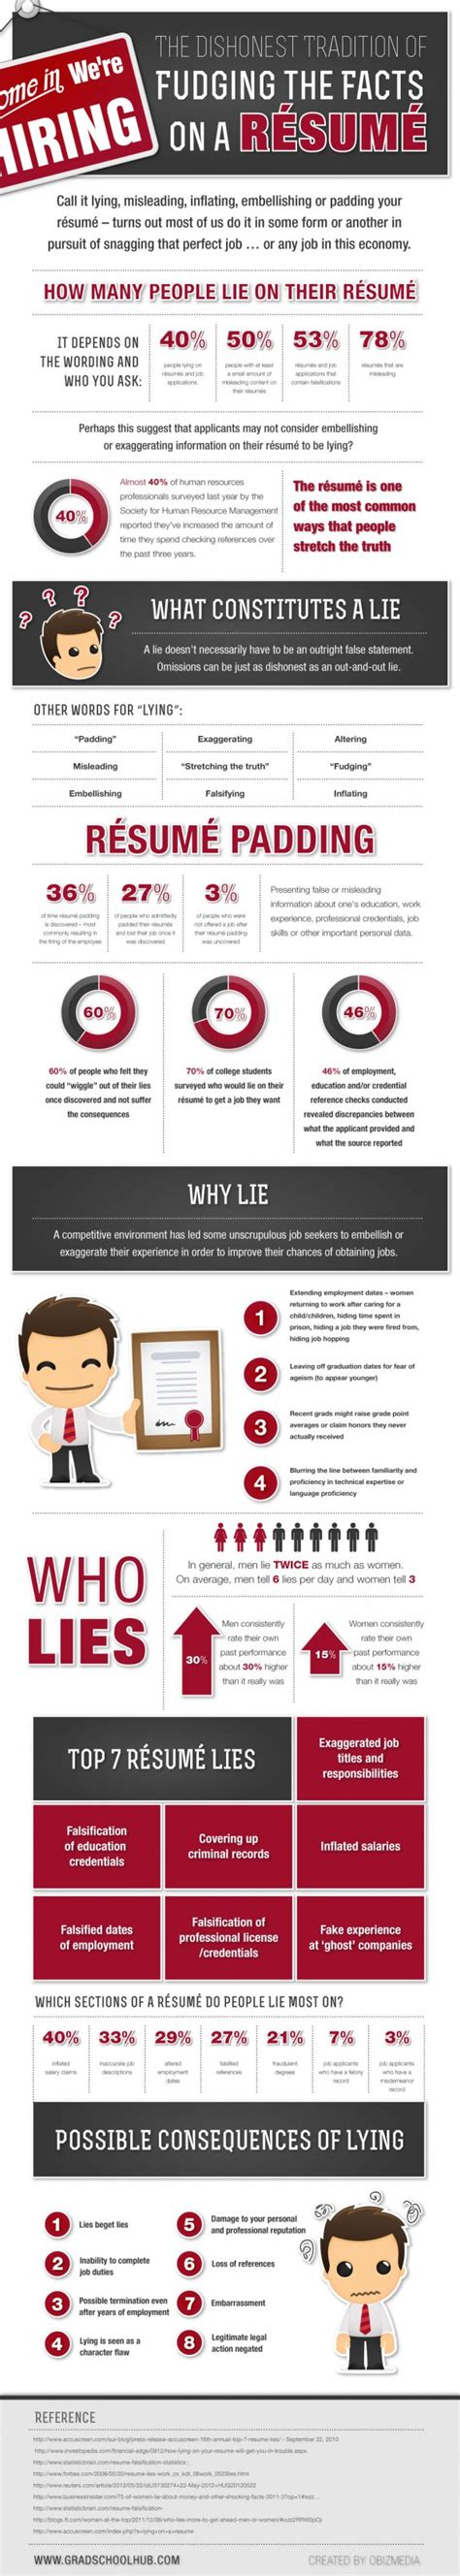 Lying On Resume by Infographic The Dishonest Tradition Of Fudging The Facts